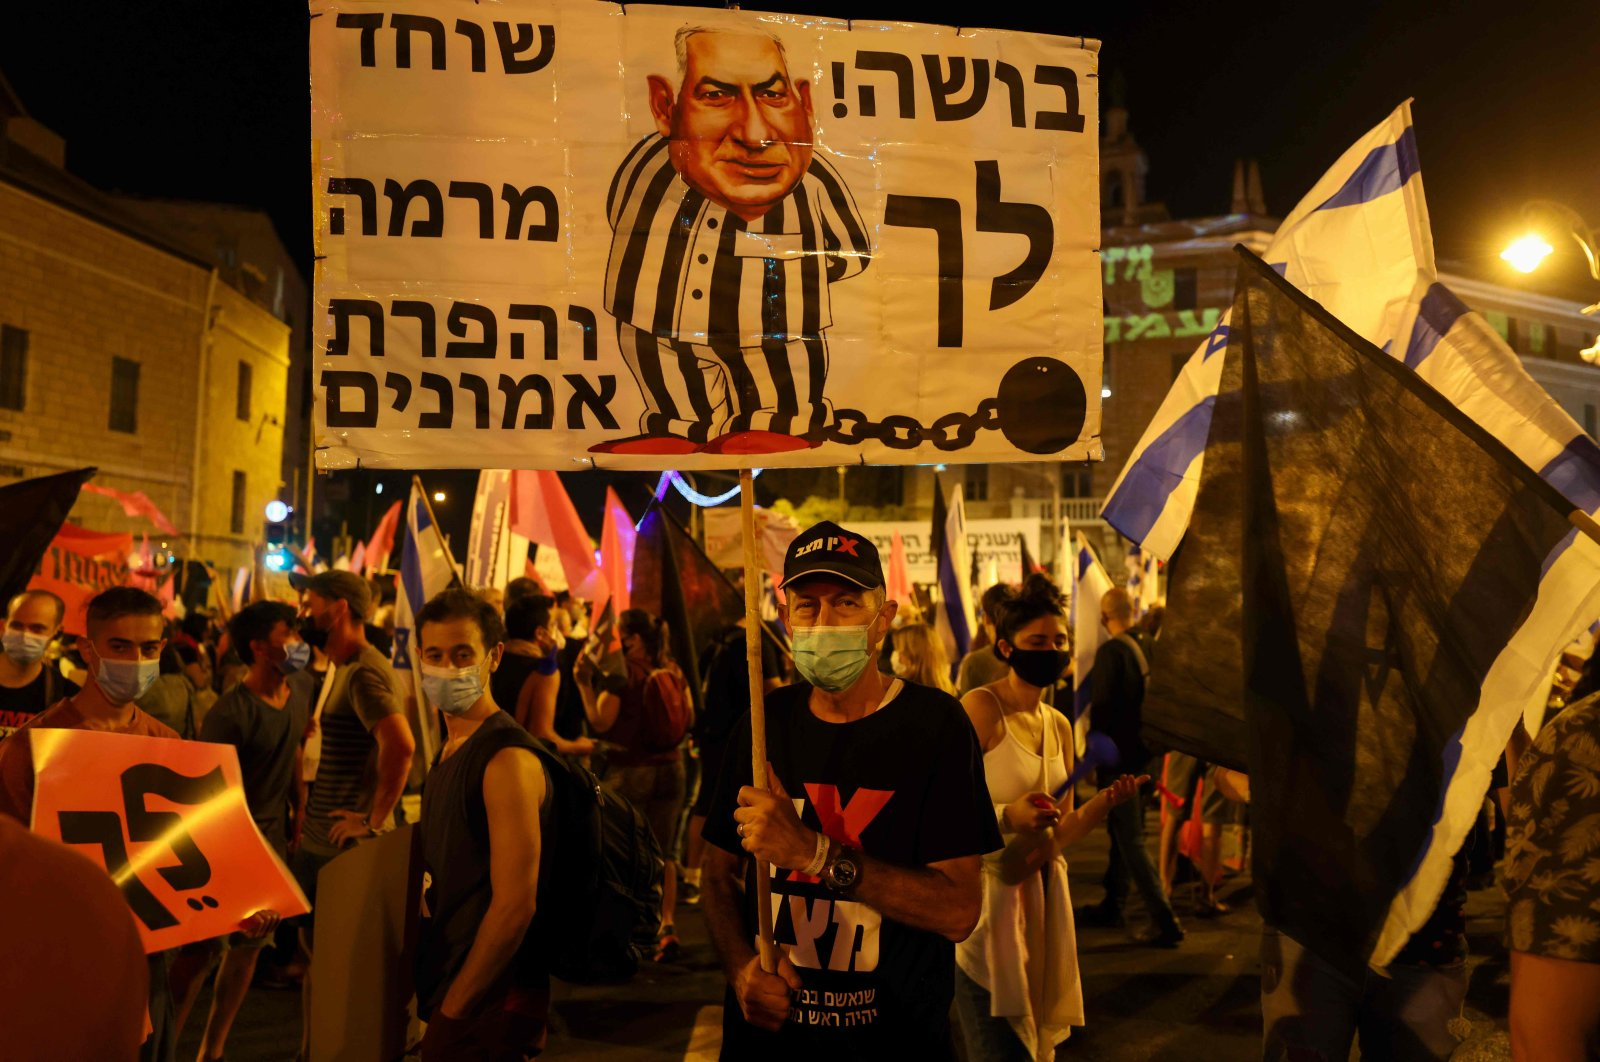 A protester carries a placard with a cartoon depicting Israeli Prime Minister Benjamin Netanyahu dressed in prison stripes and shackled with a ball and chain during a demonstration near the prime minister's residence in Jerusalem, Oct. 17, 2020. (AFP Photo)